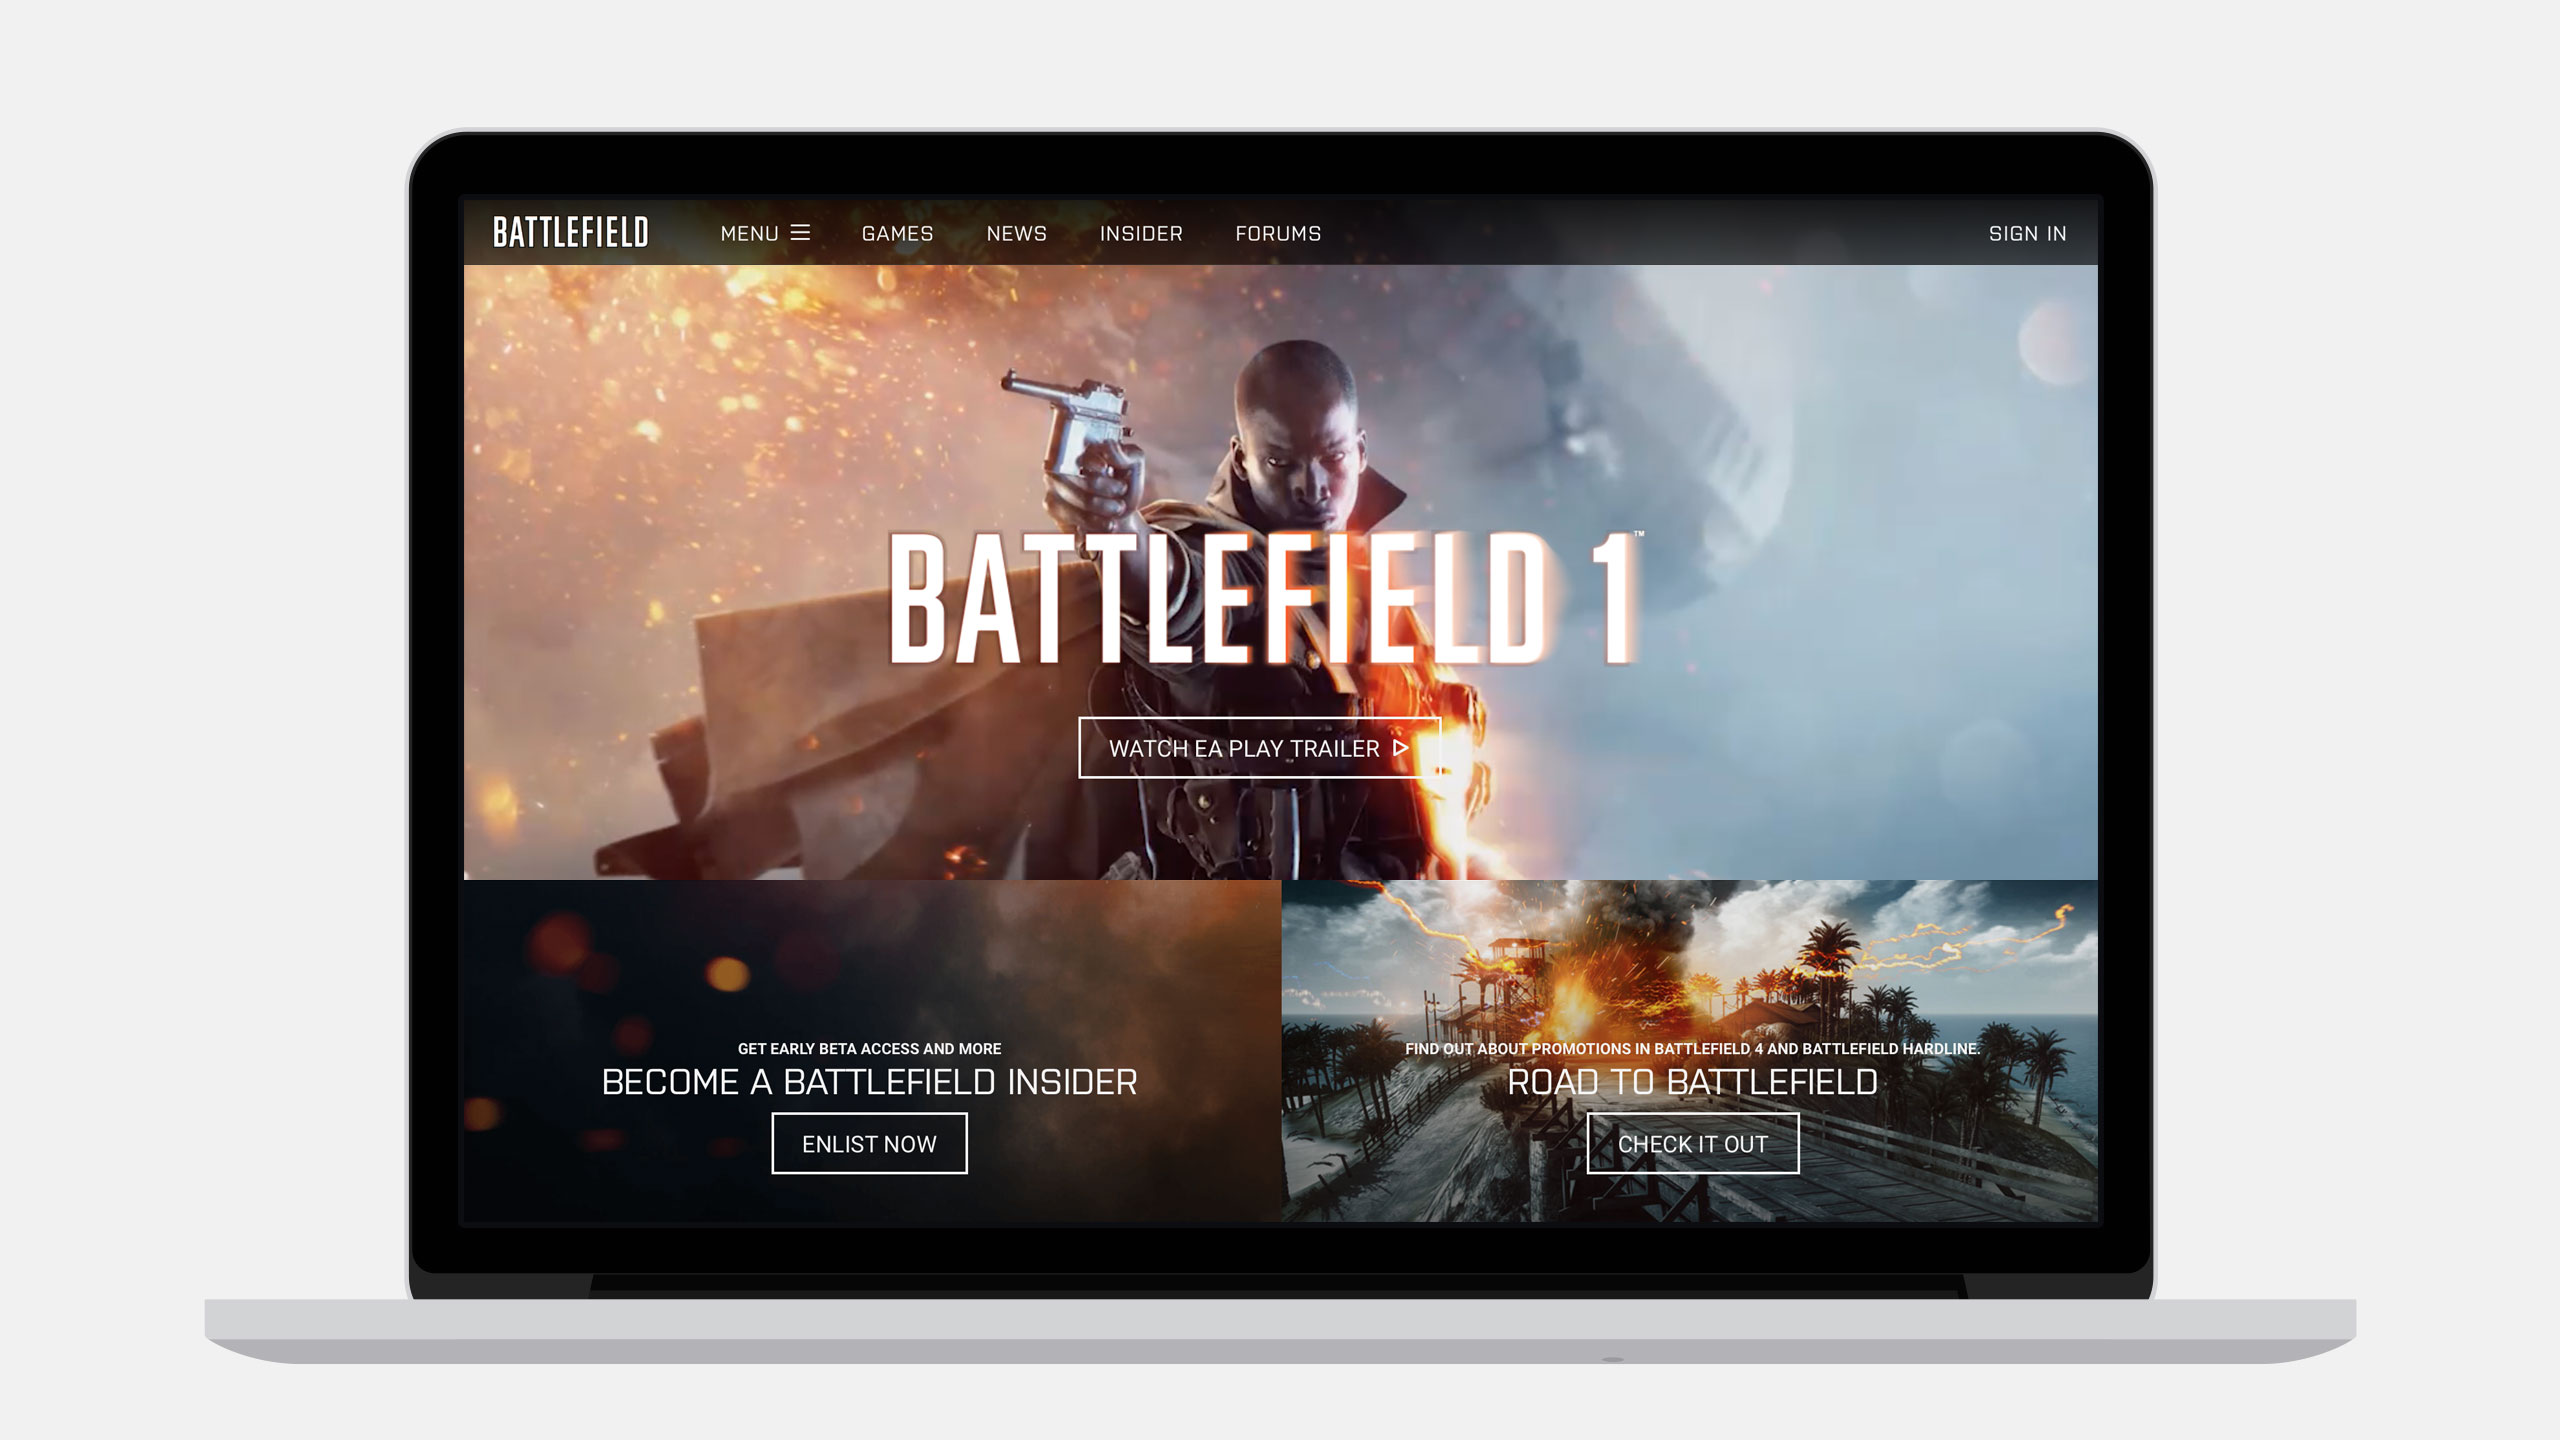 ea-battlefield-laptop-bf1-01